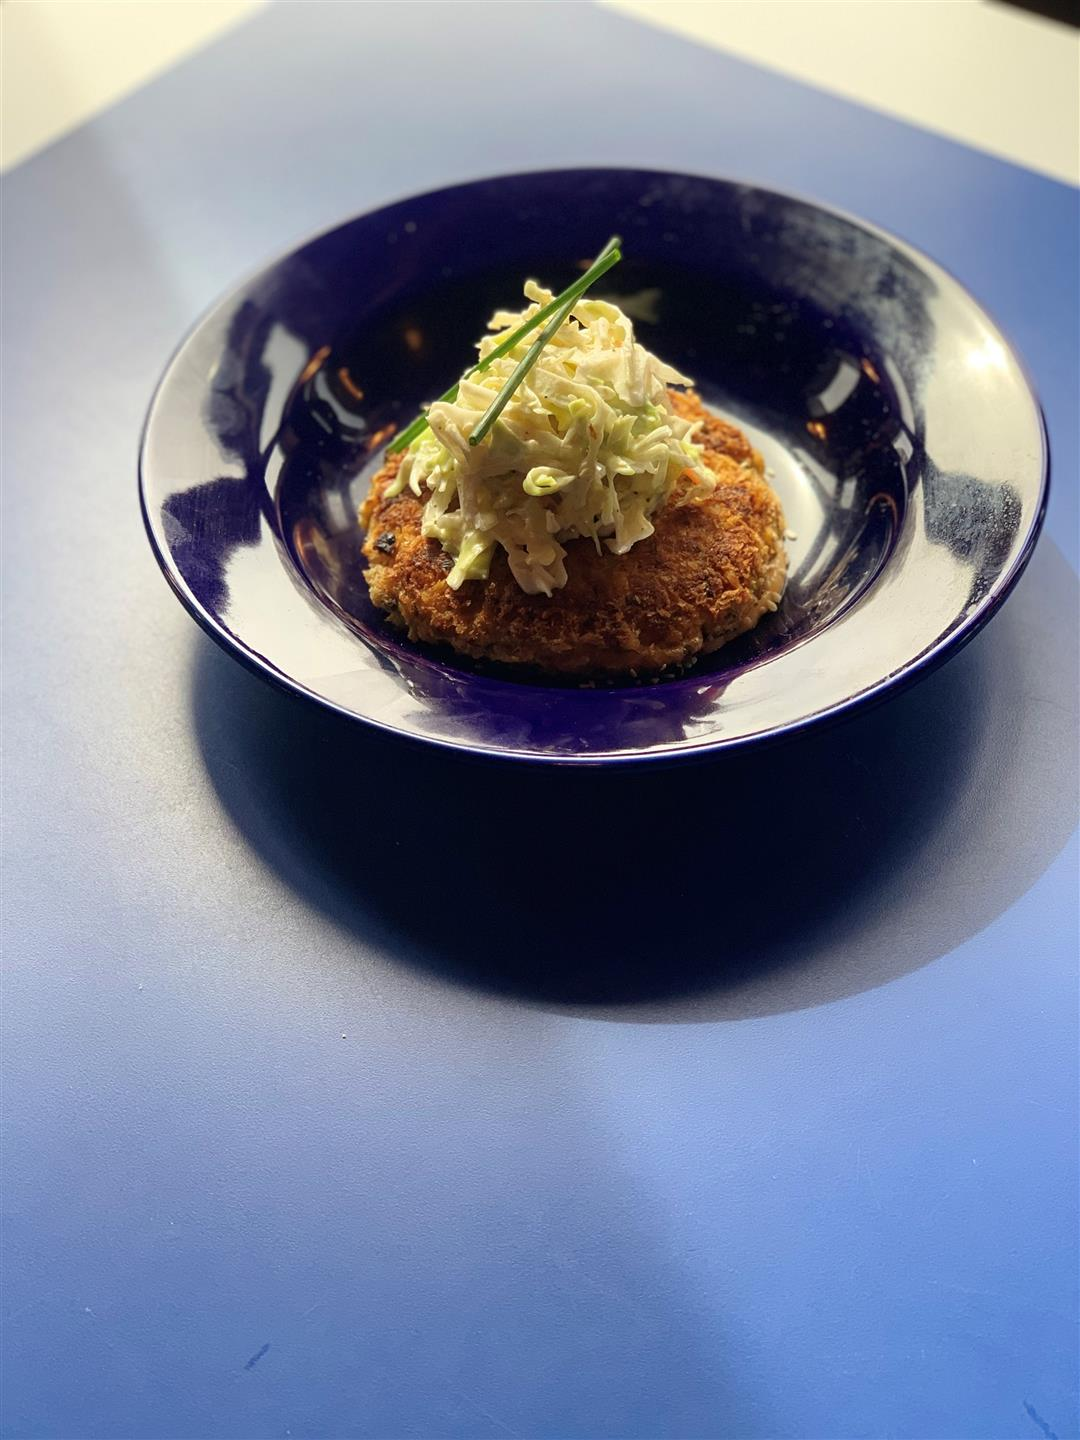 crab cake served with coleslaw on top